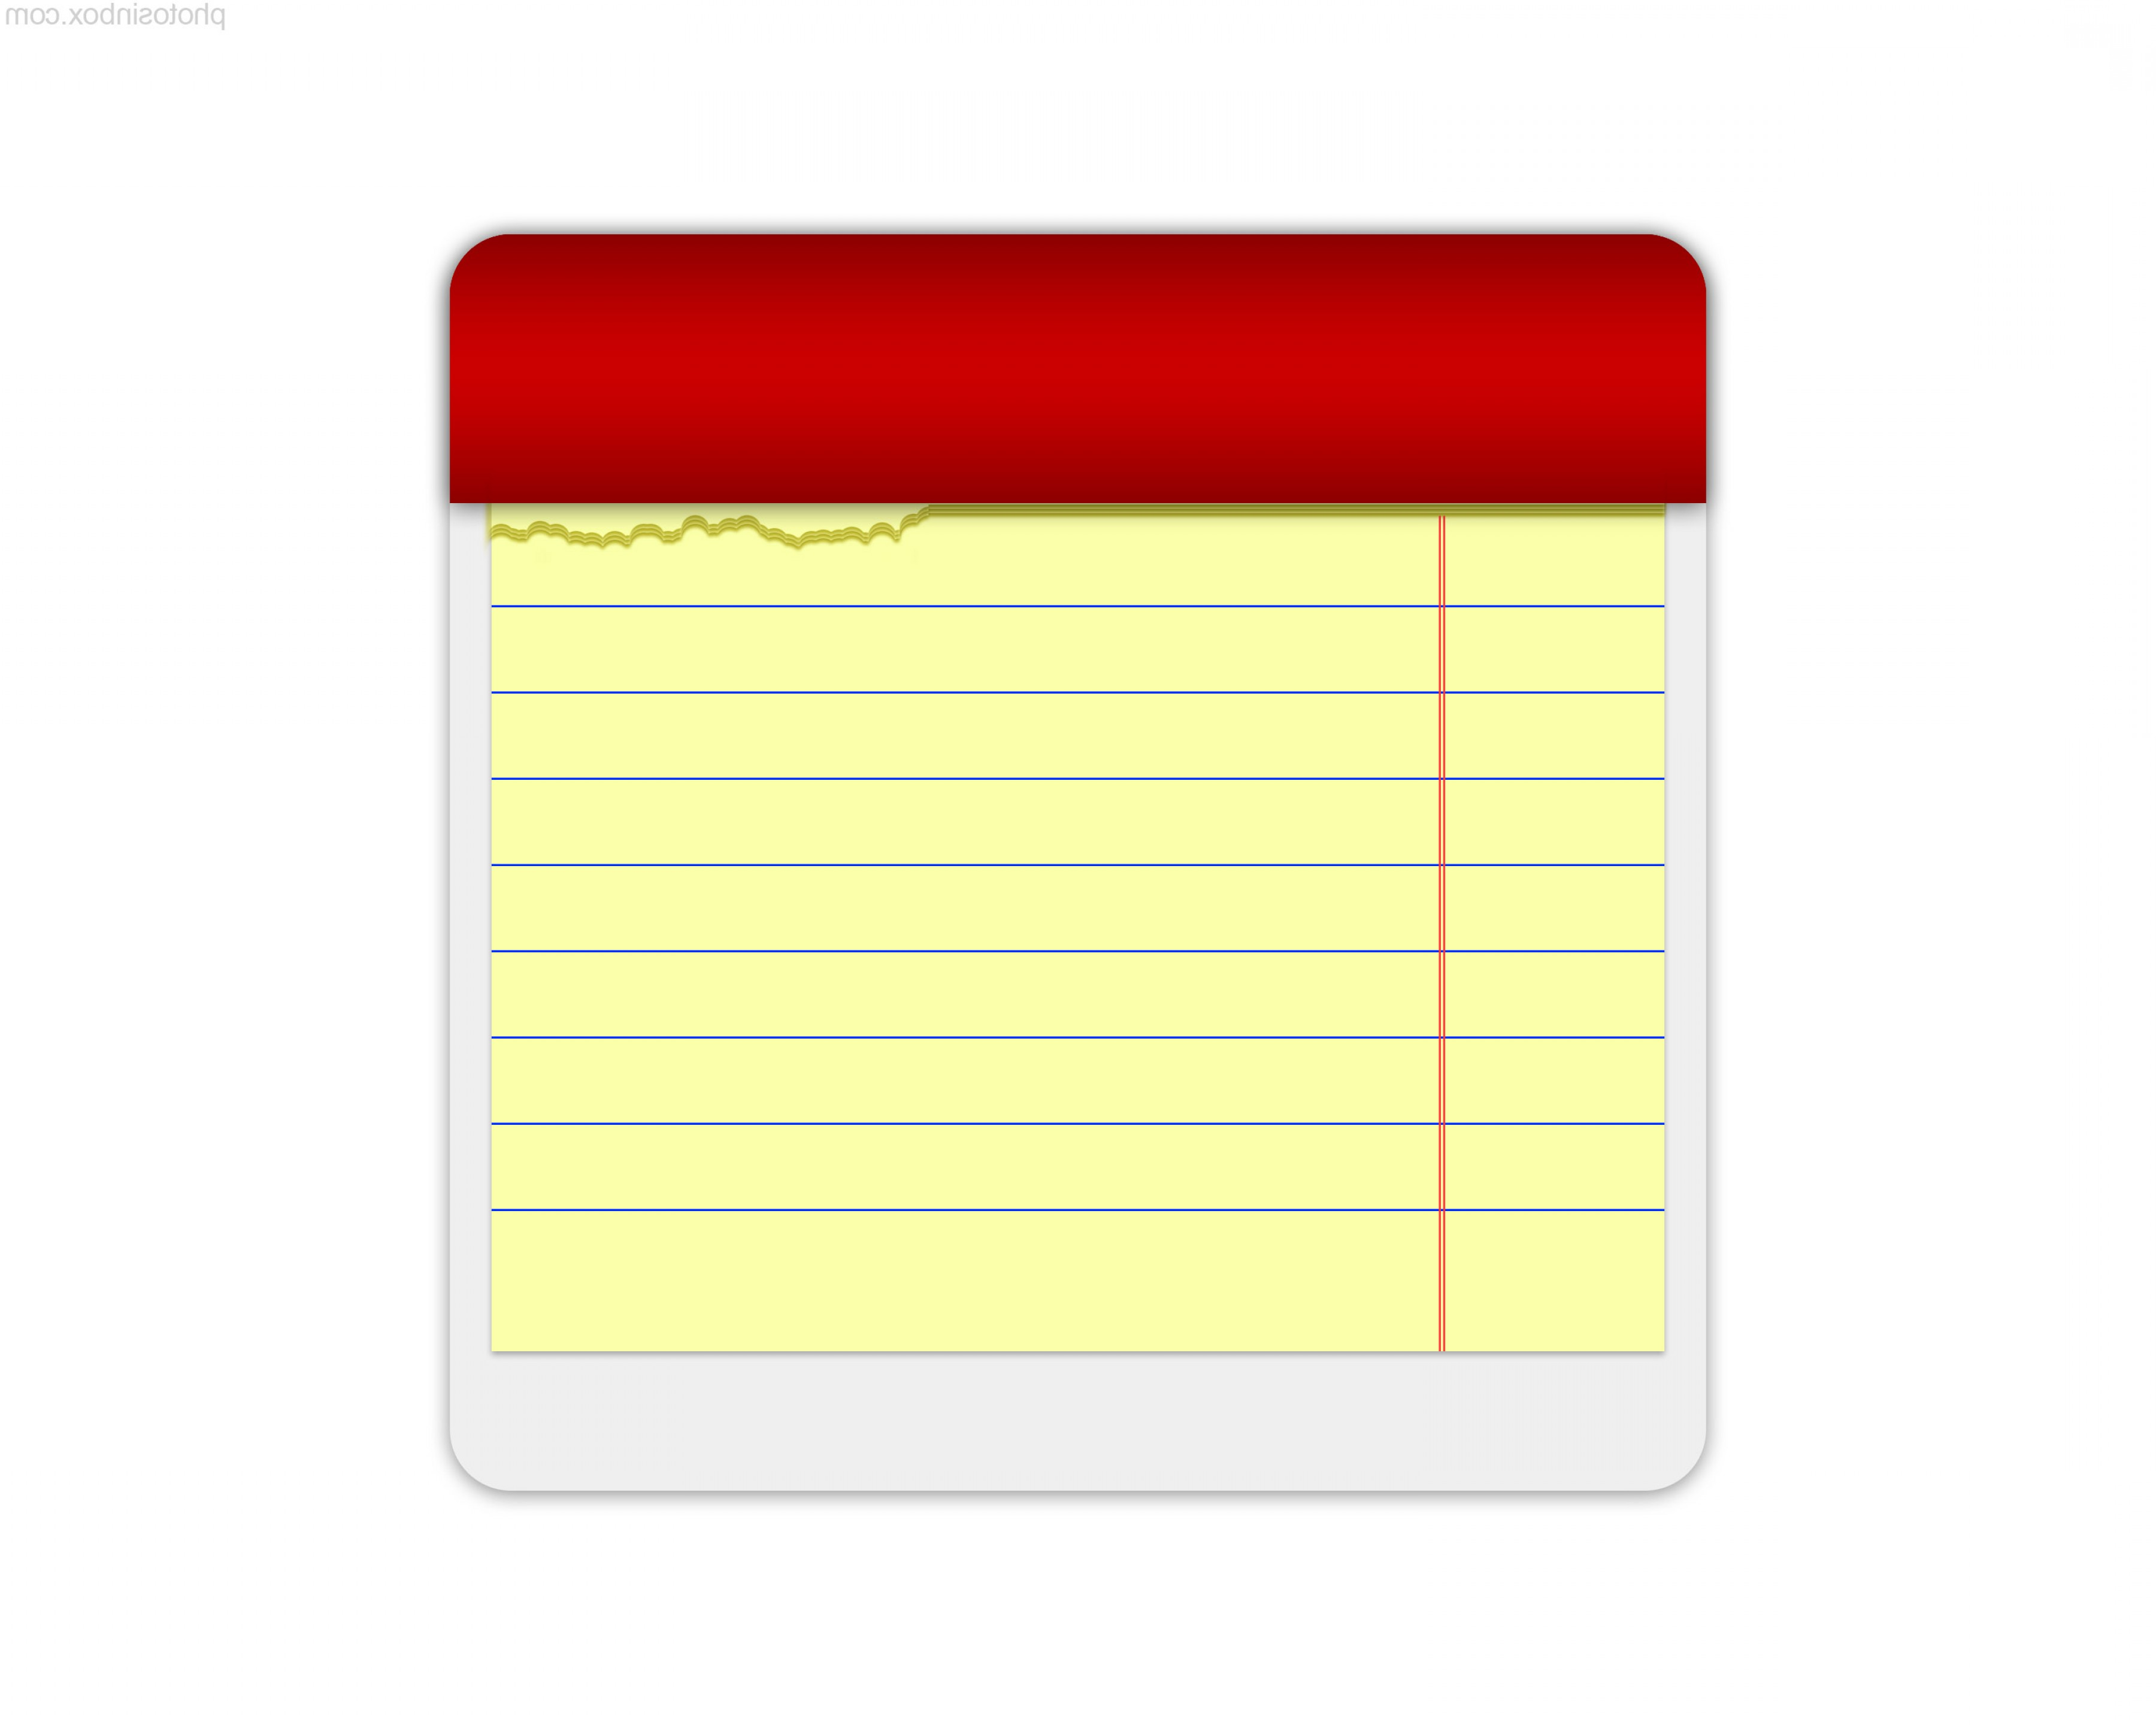 Piece Of Notebook Paper Clipart - ClipArt Best